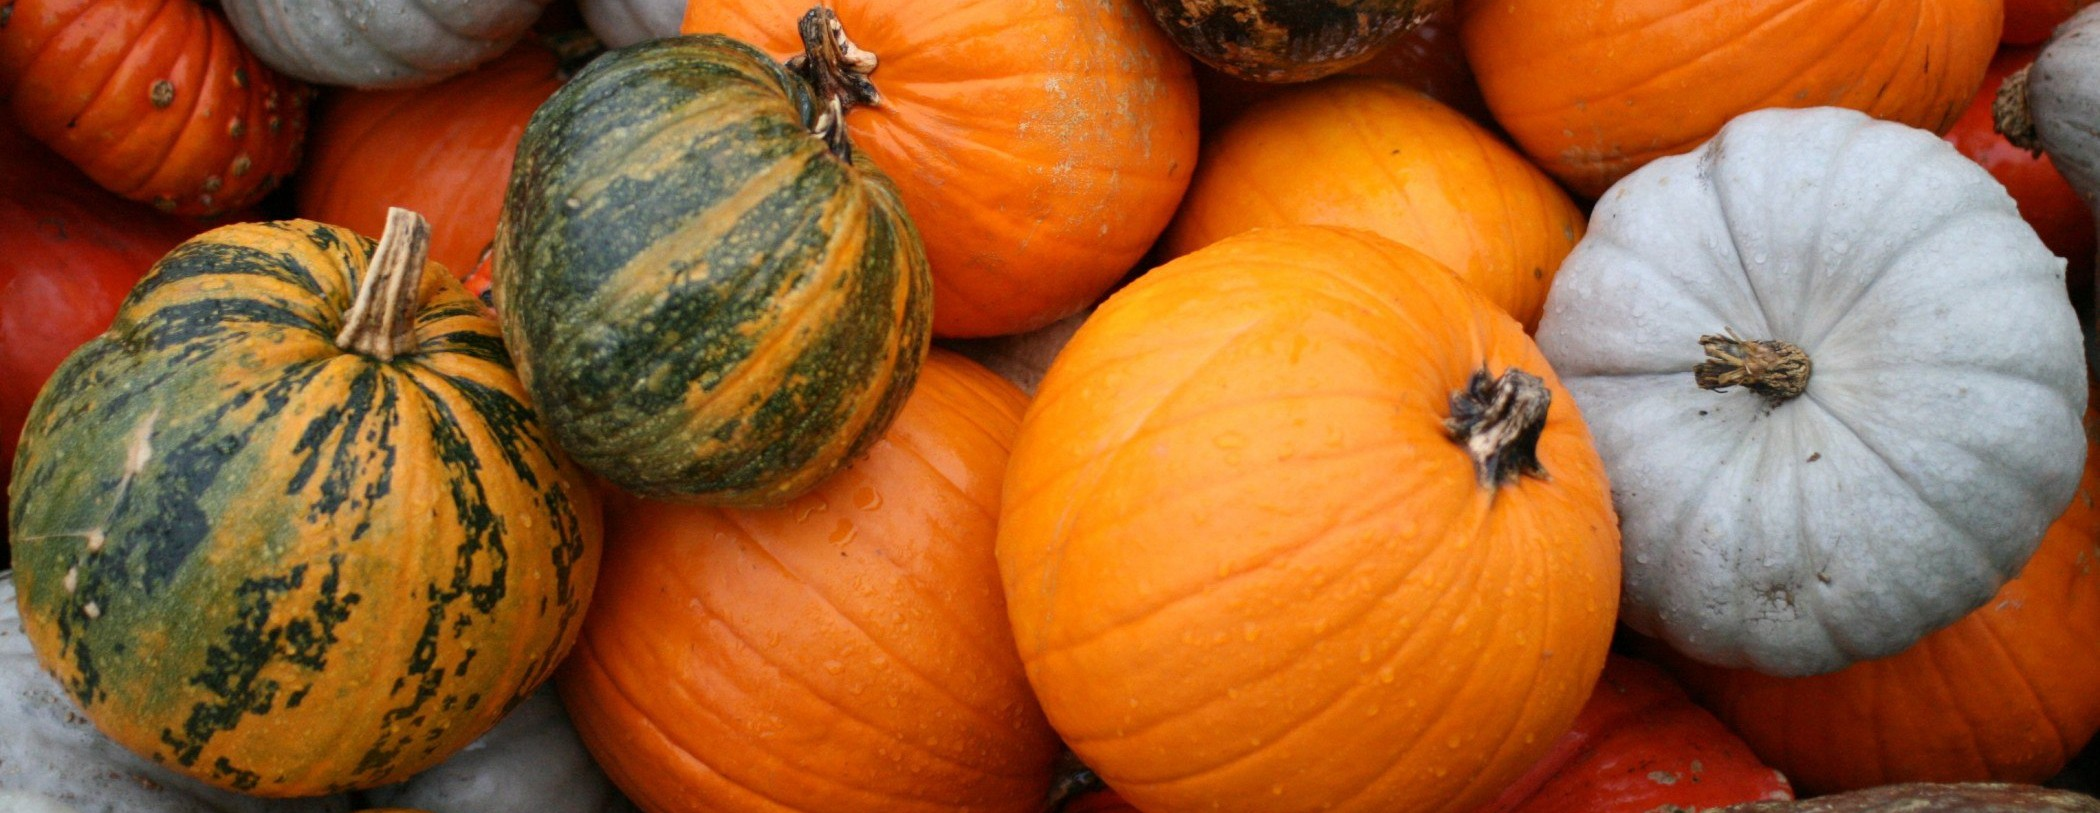 Pumpkins for Truxton's Pumpkin Cheesecake